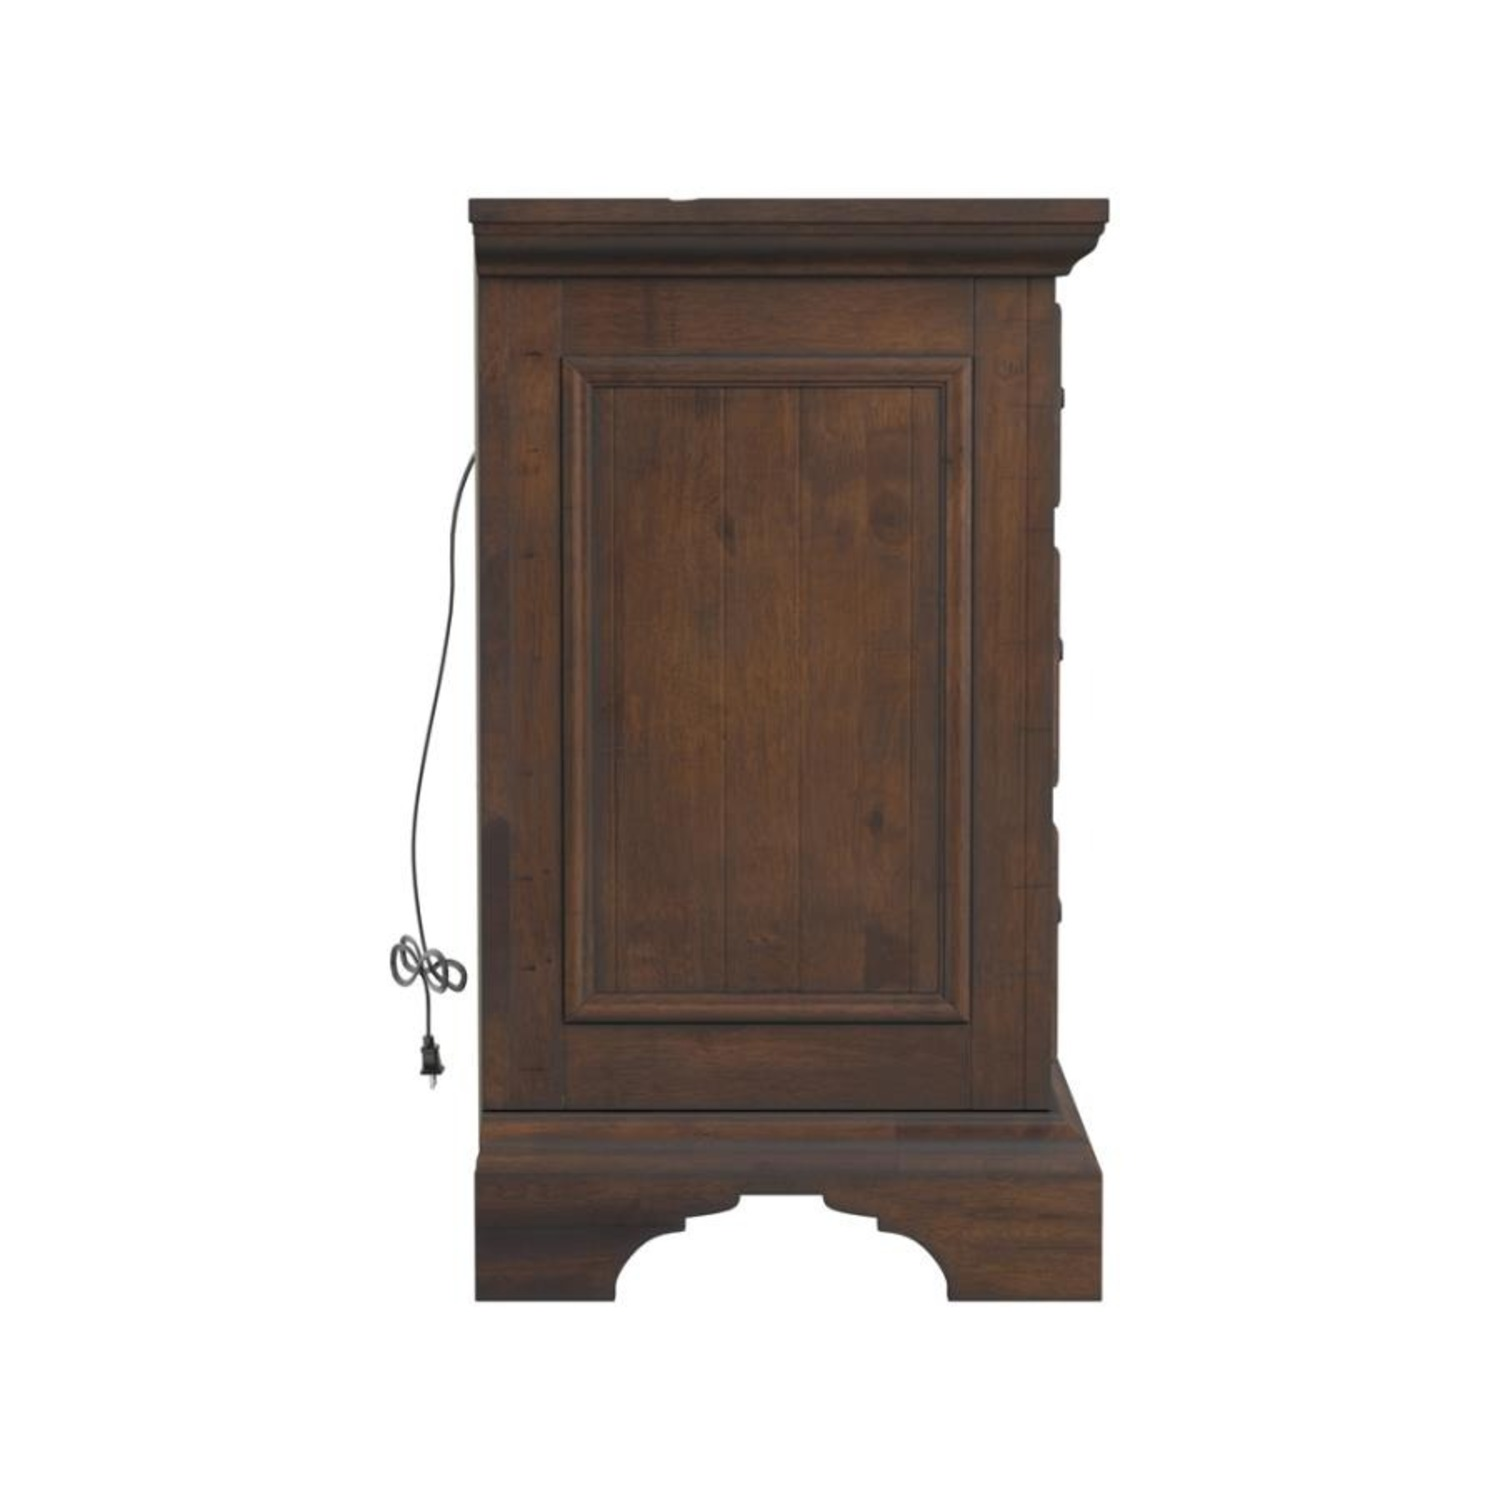 Nightstand In Vintage Bourbon & Rustic Finish - image-2